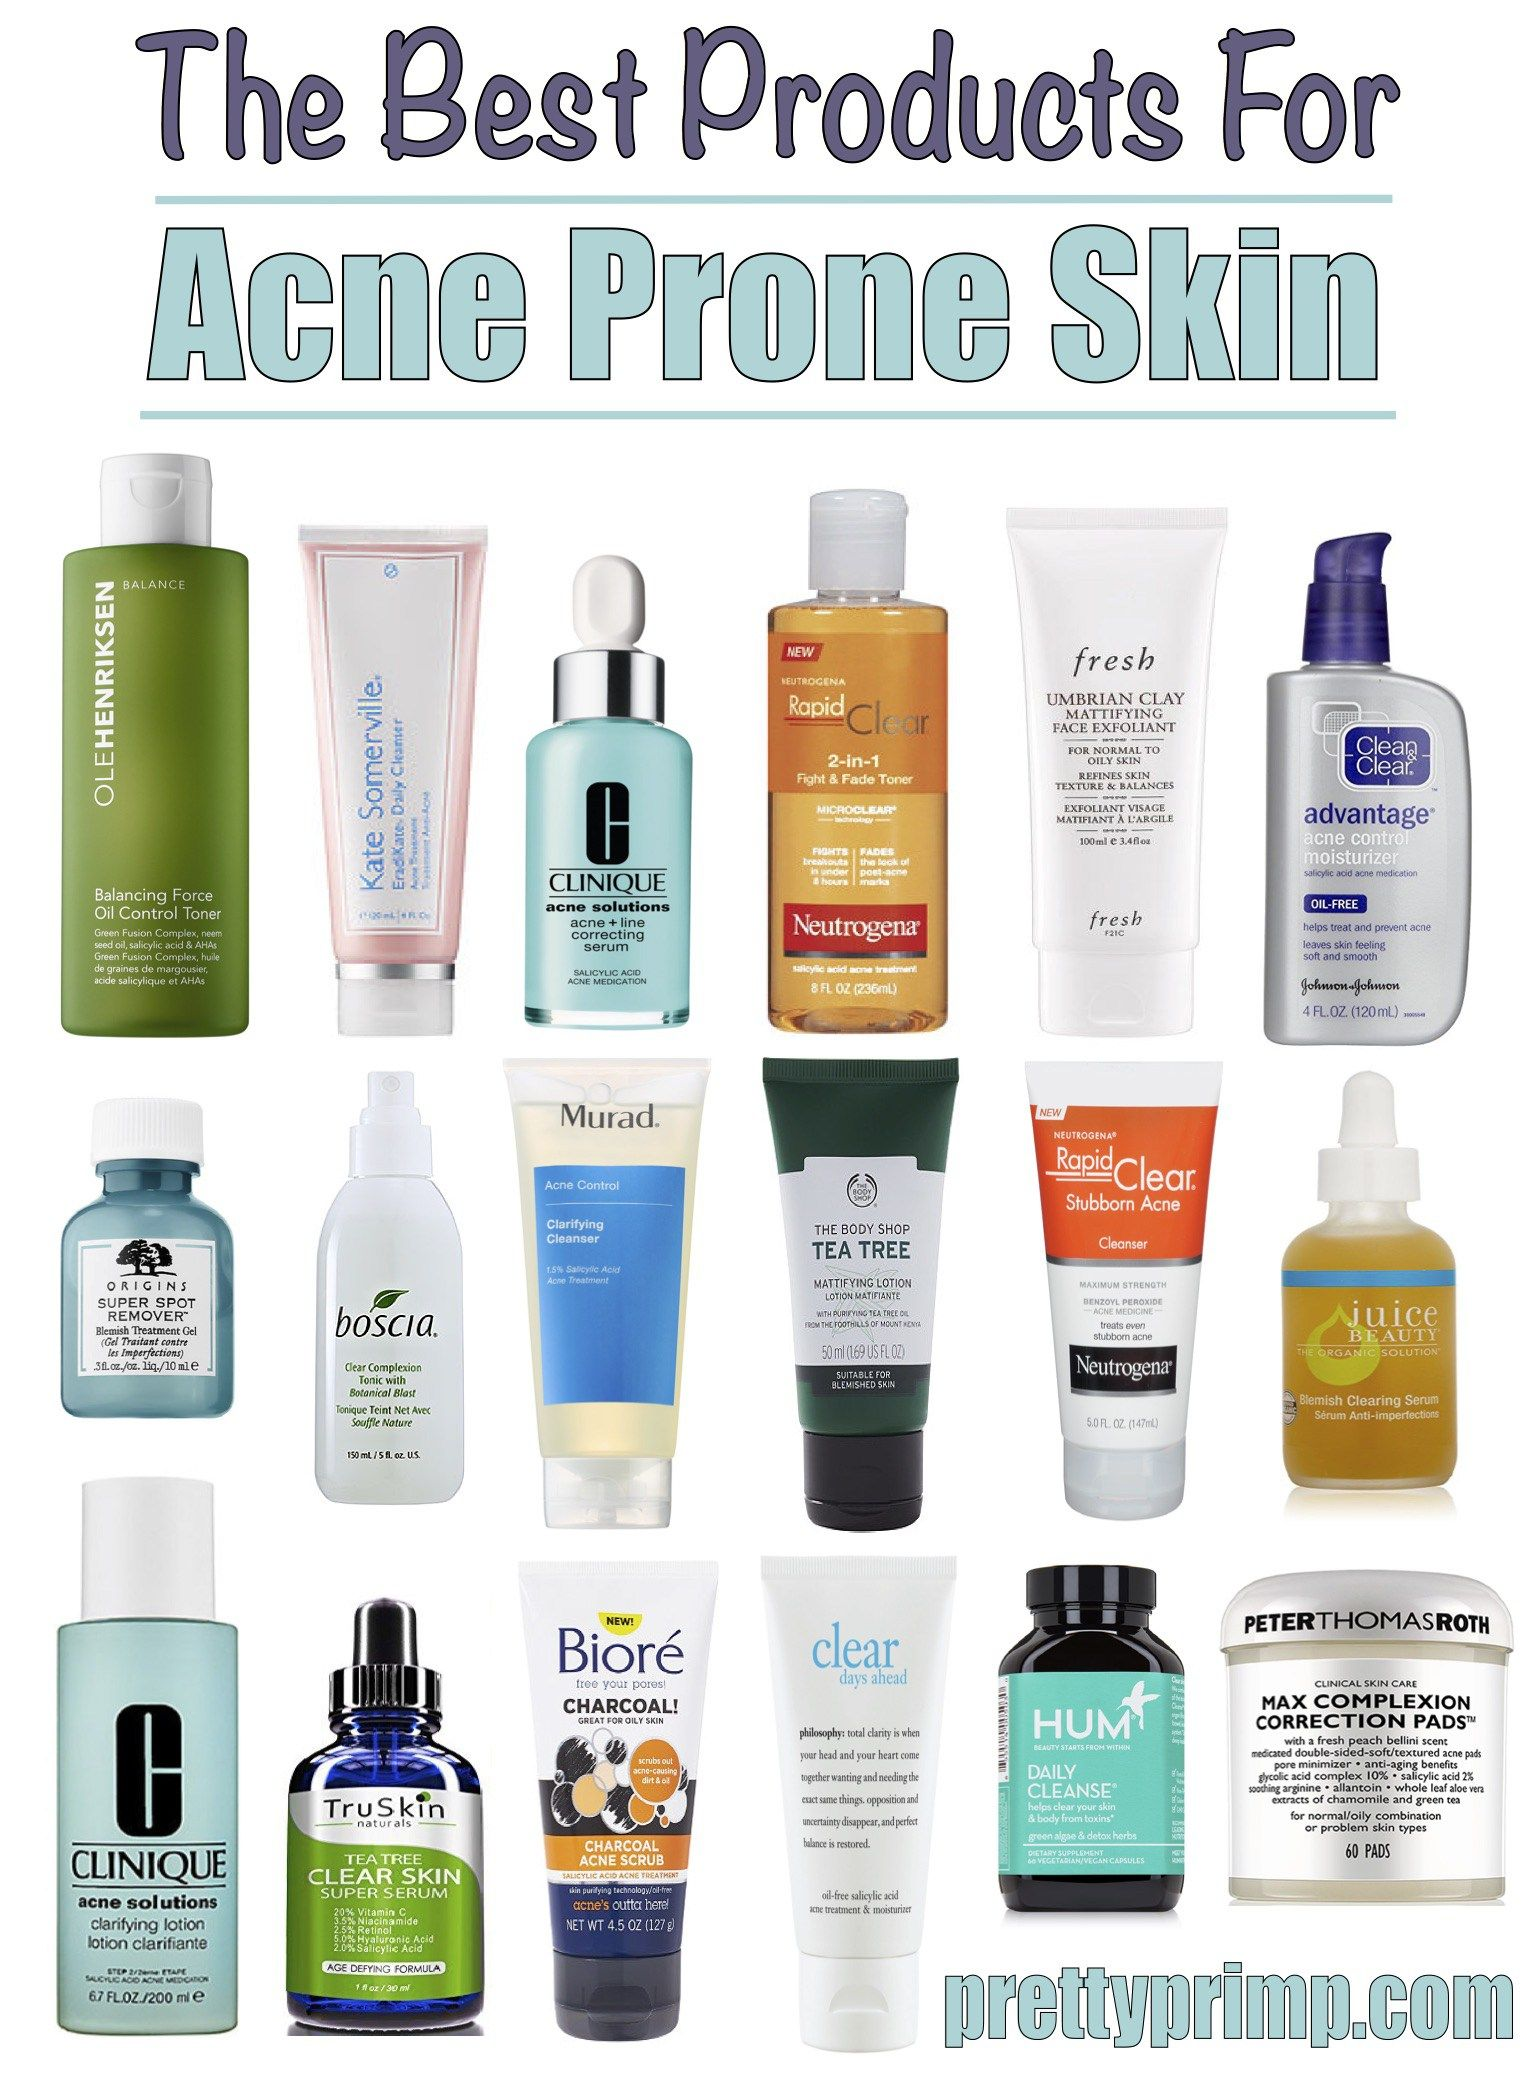 Best Products For Acne Top Acne Solutions That Will Clear Your Skin! is part of Best acne products - Few skin problems can be as much of a pain to solve as acne  Which is why we compiled the best products for acne in this post  If you control oil production, get rid of dead skin cells before they clog pores, and kill off acne causing bacteria, you are extremely likely to notice at least some improvement in your skin!